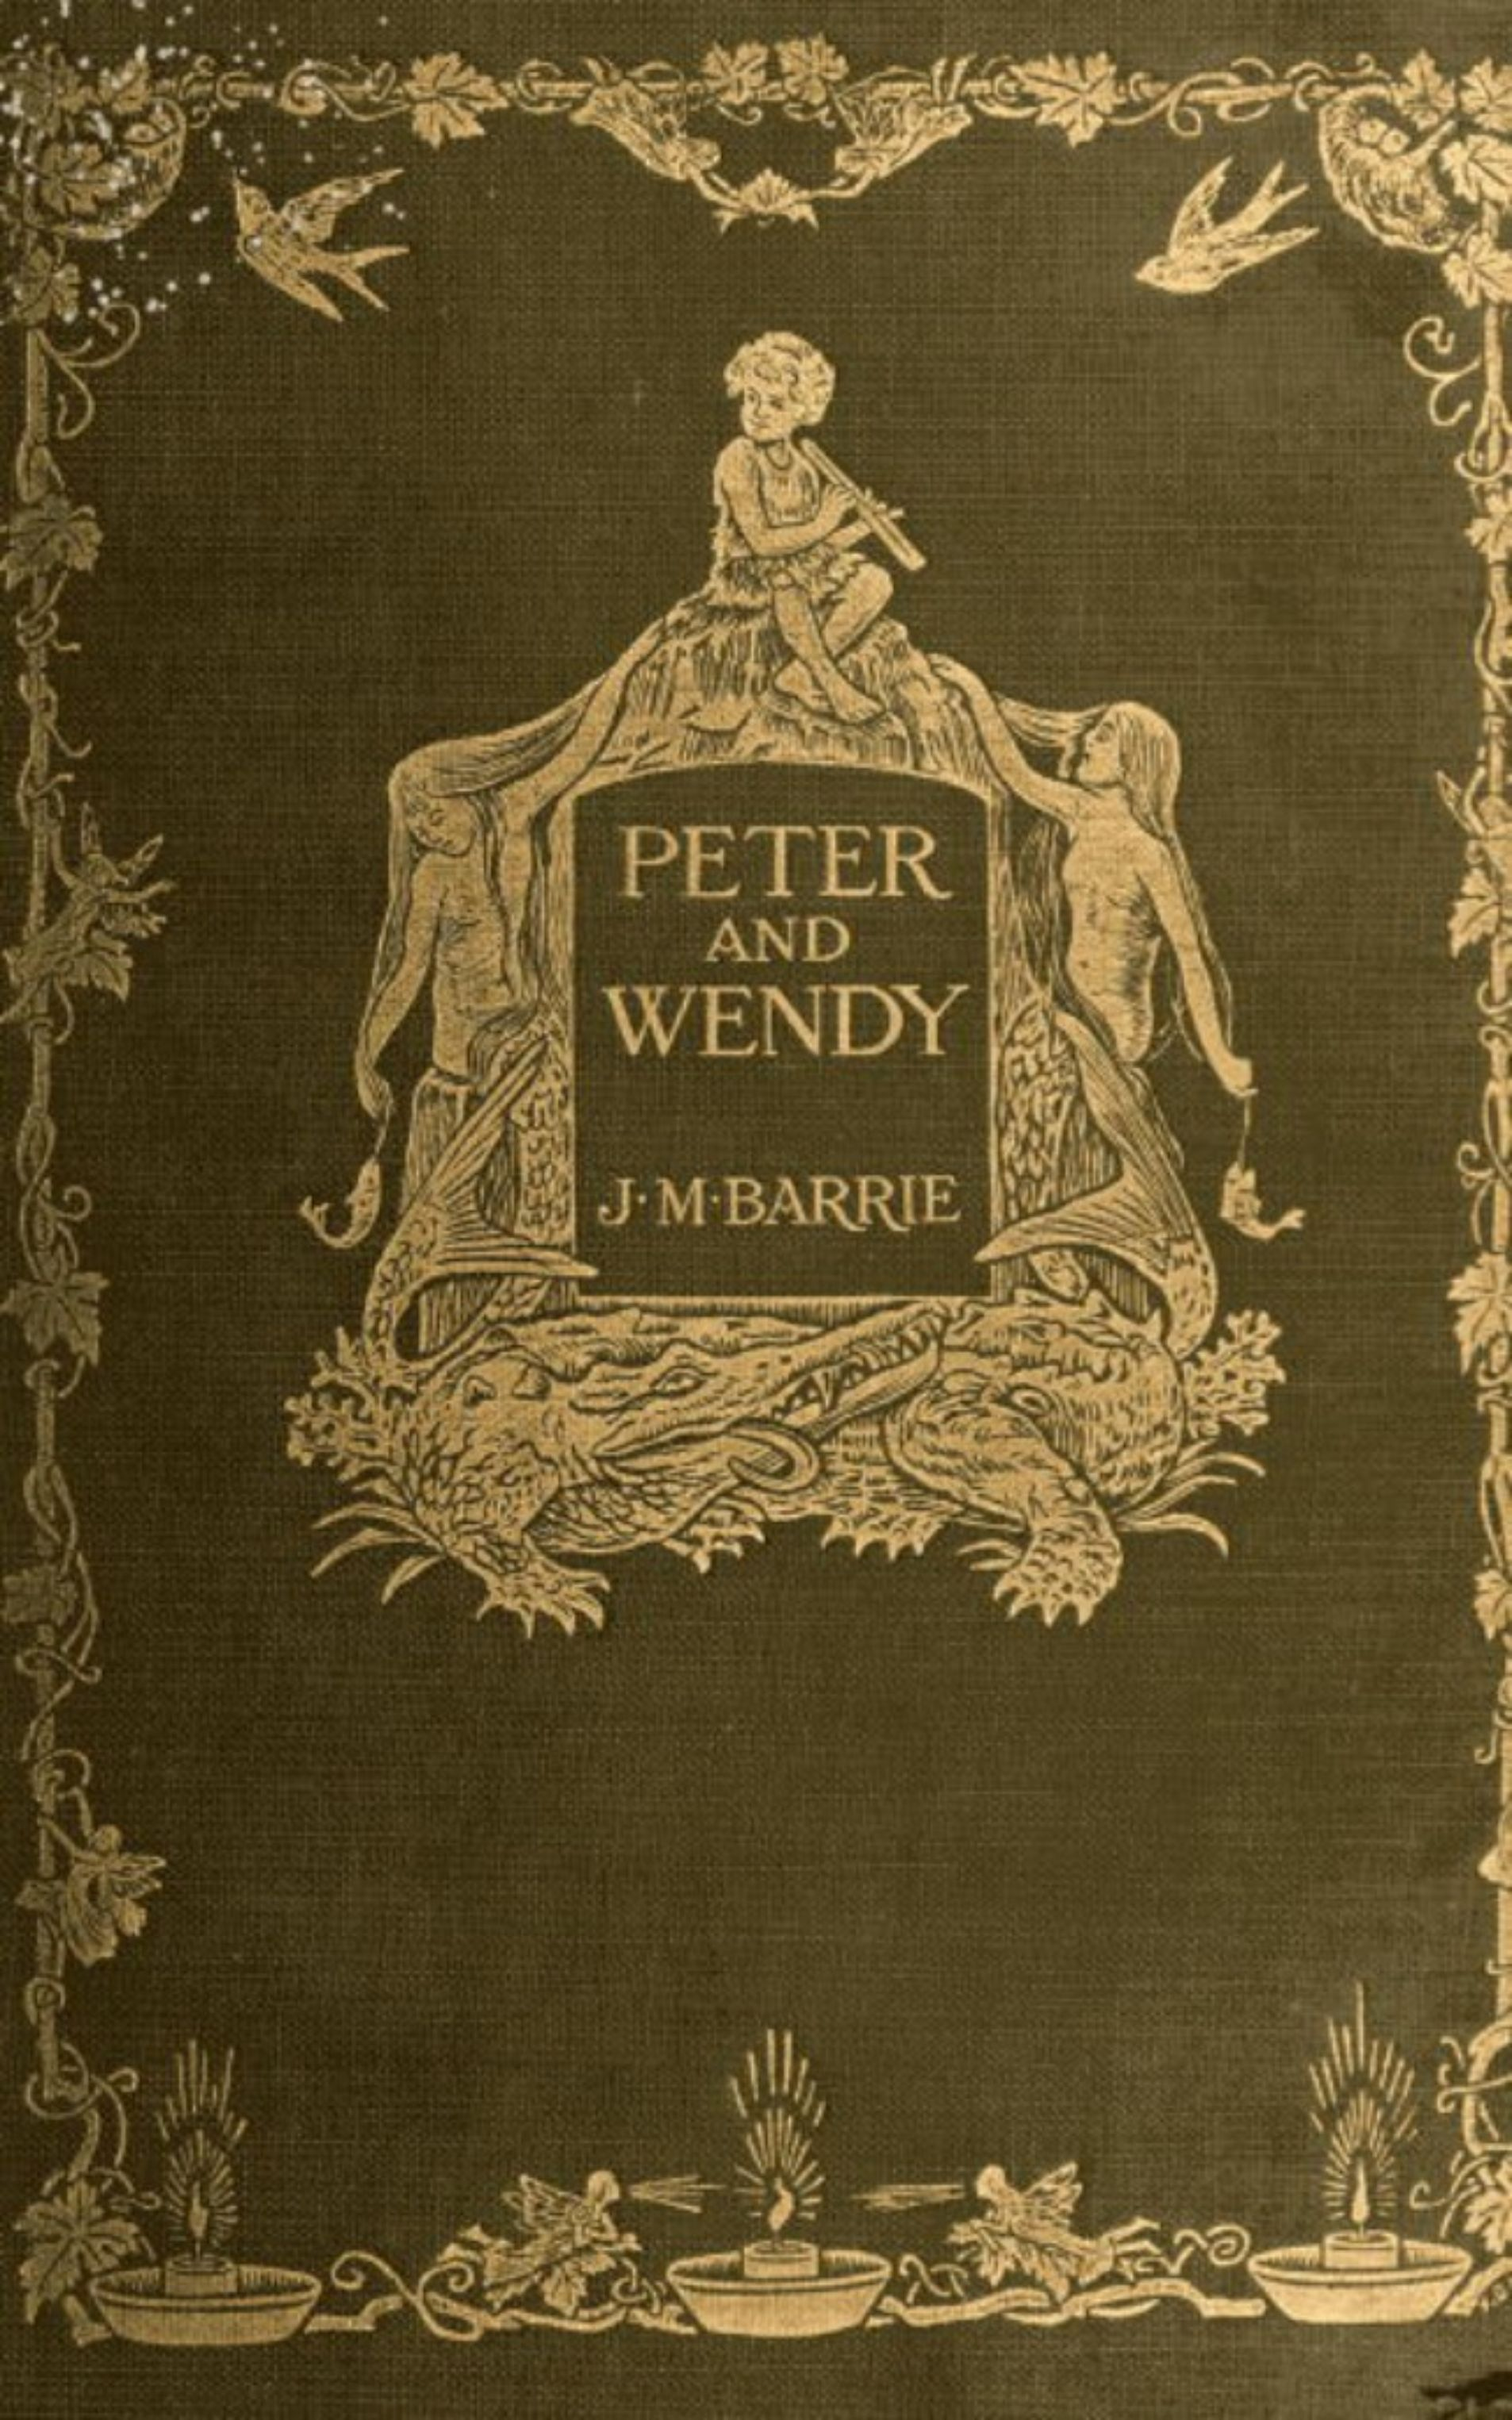 J. M. Barrie Peter Pan or Peter and Wendy